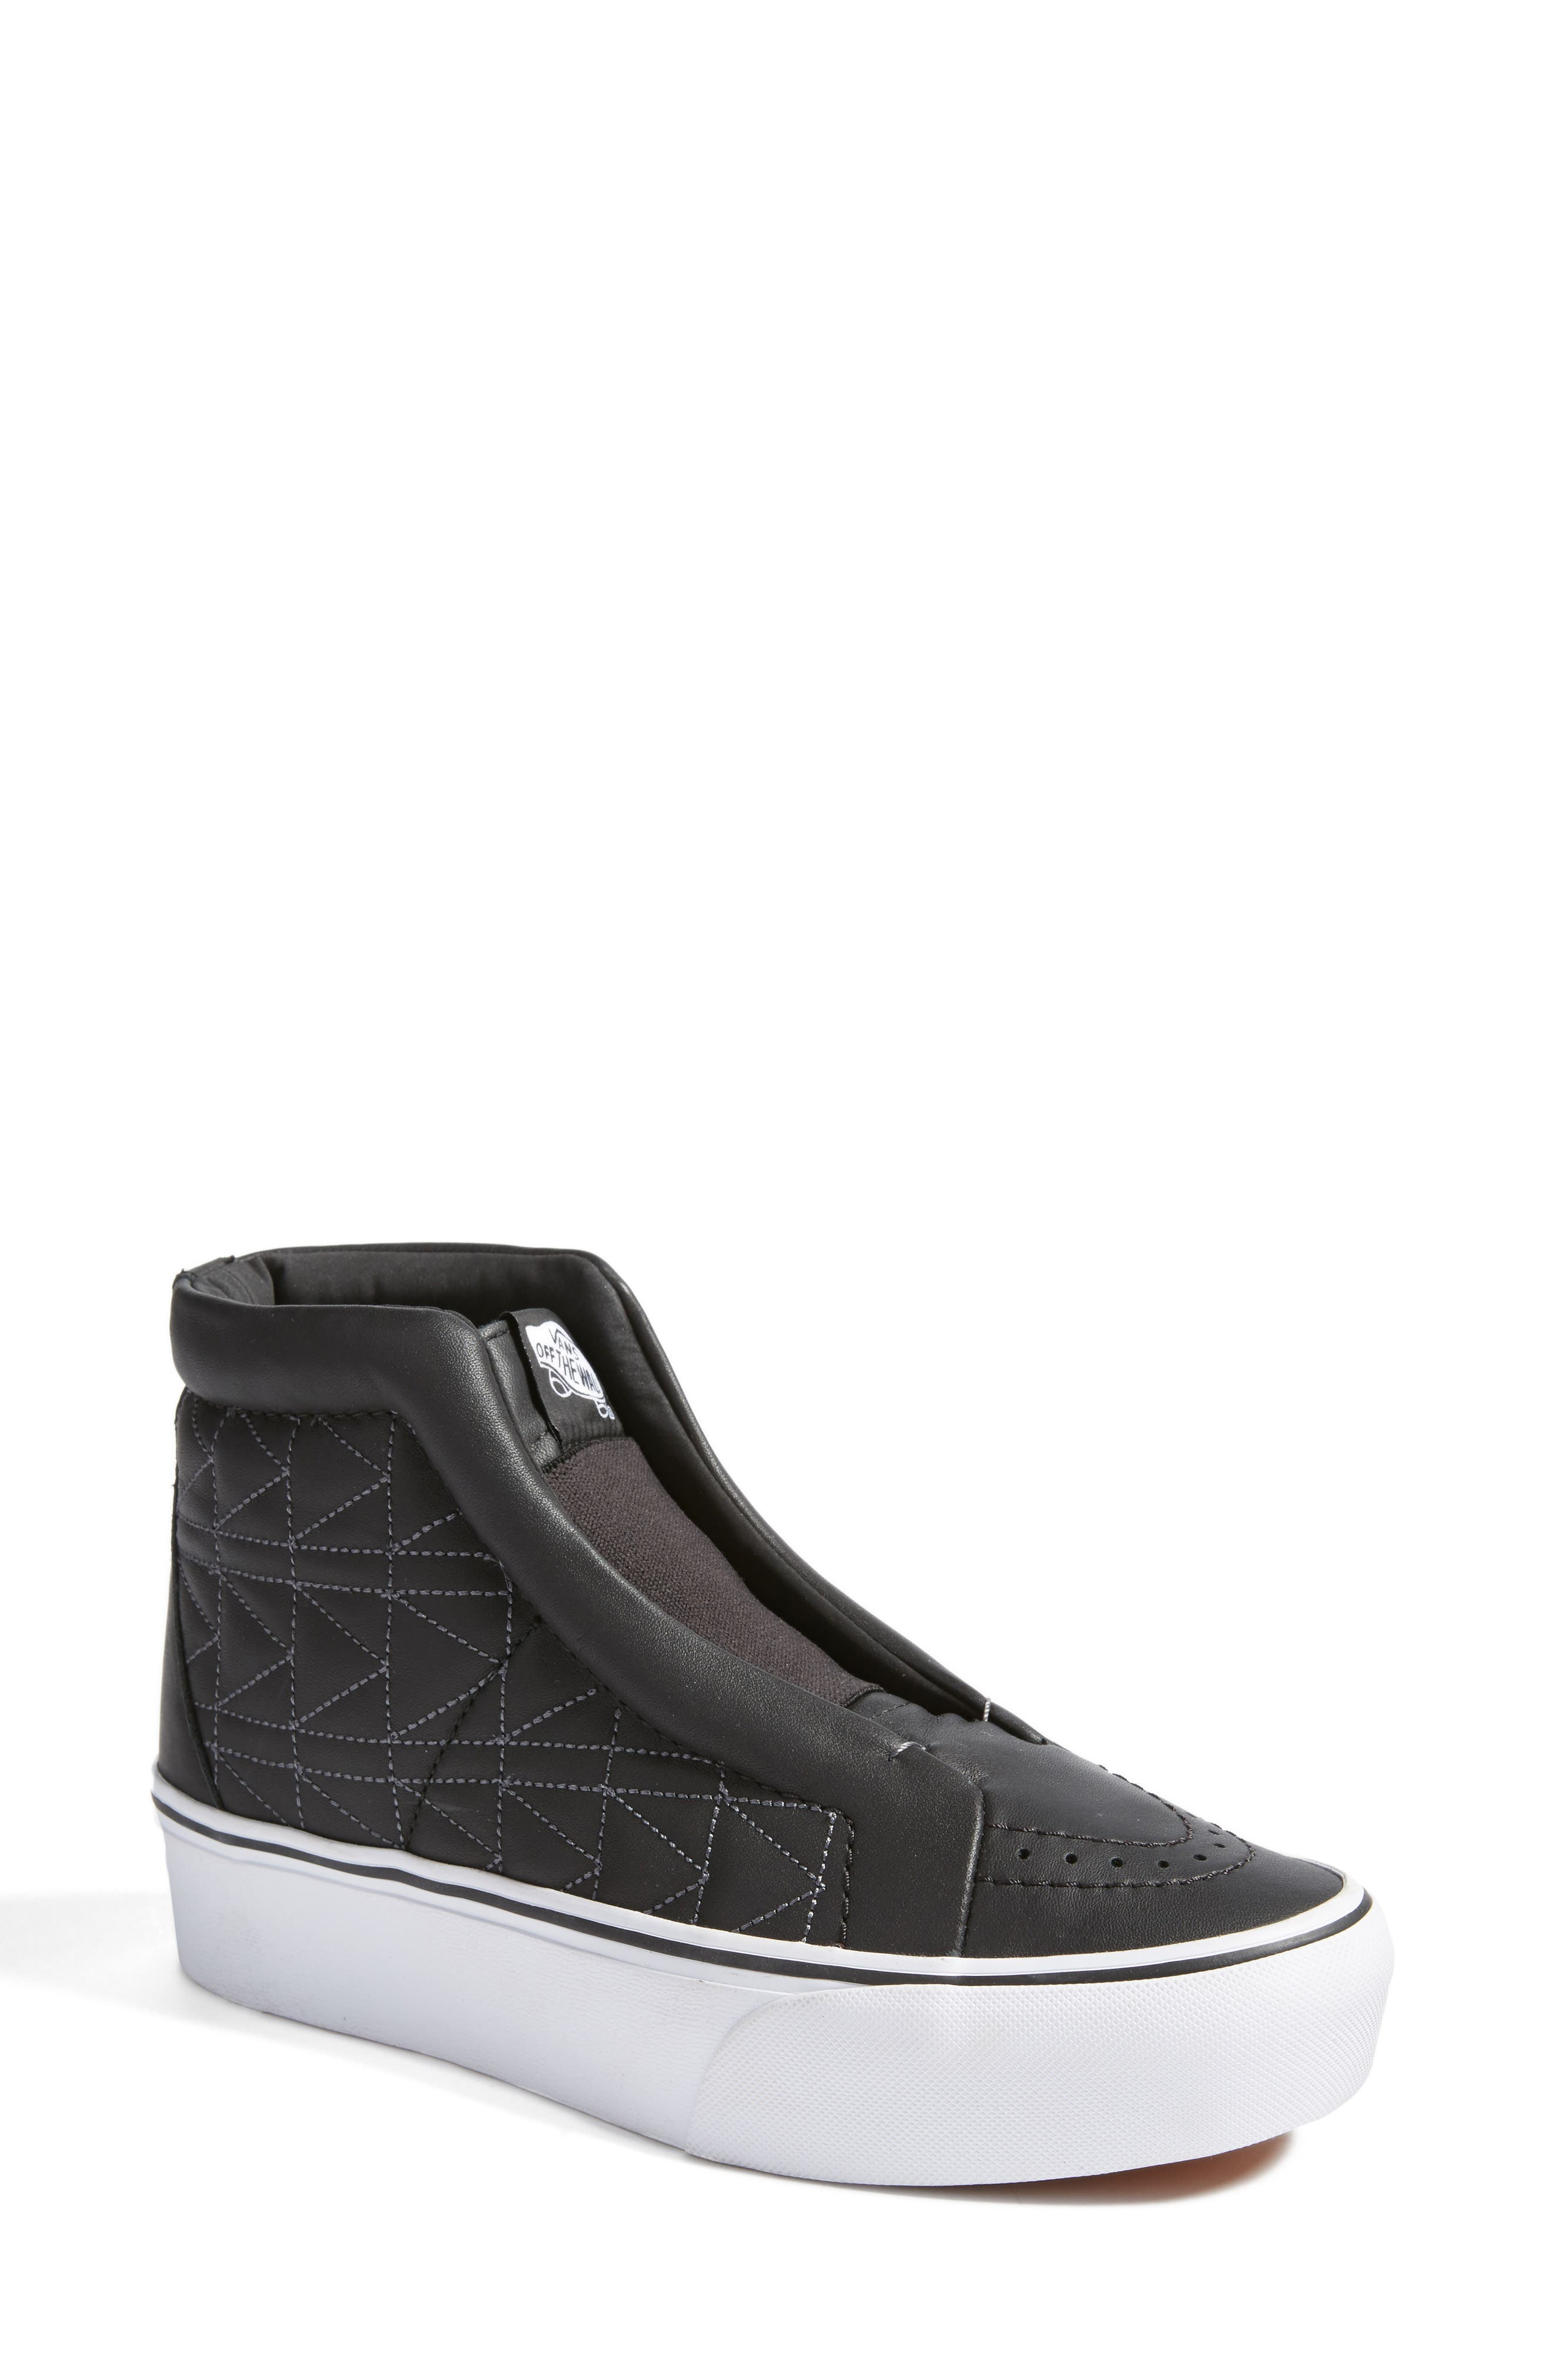 x KARL LAGERFELD SK8-Hi Leather Sneaker,                             Main thumbnail 1, color,                             001